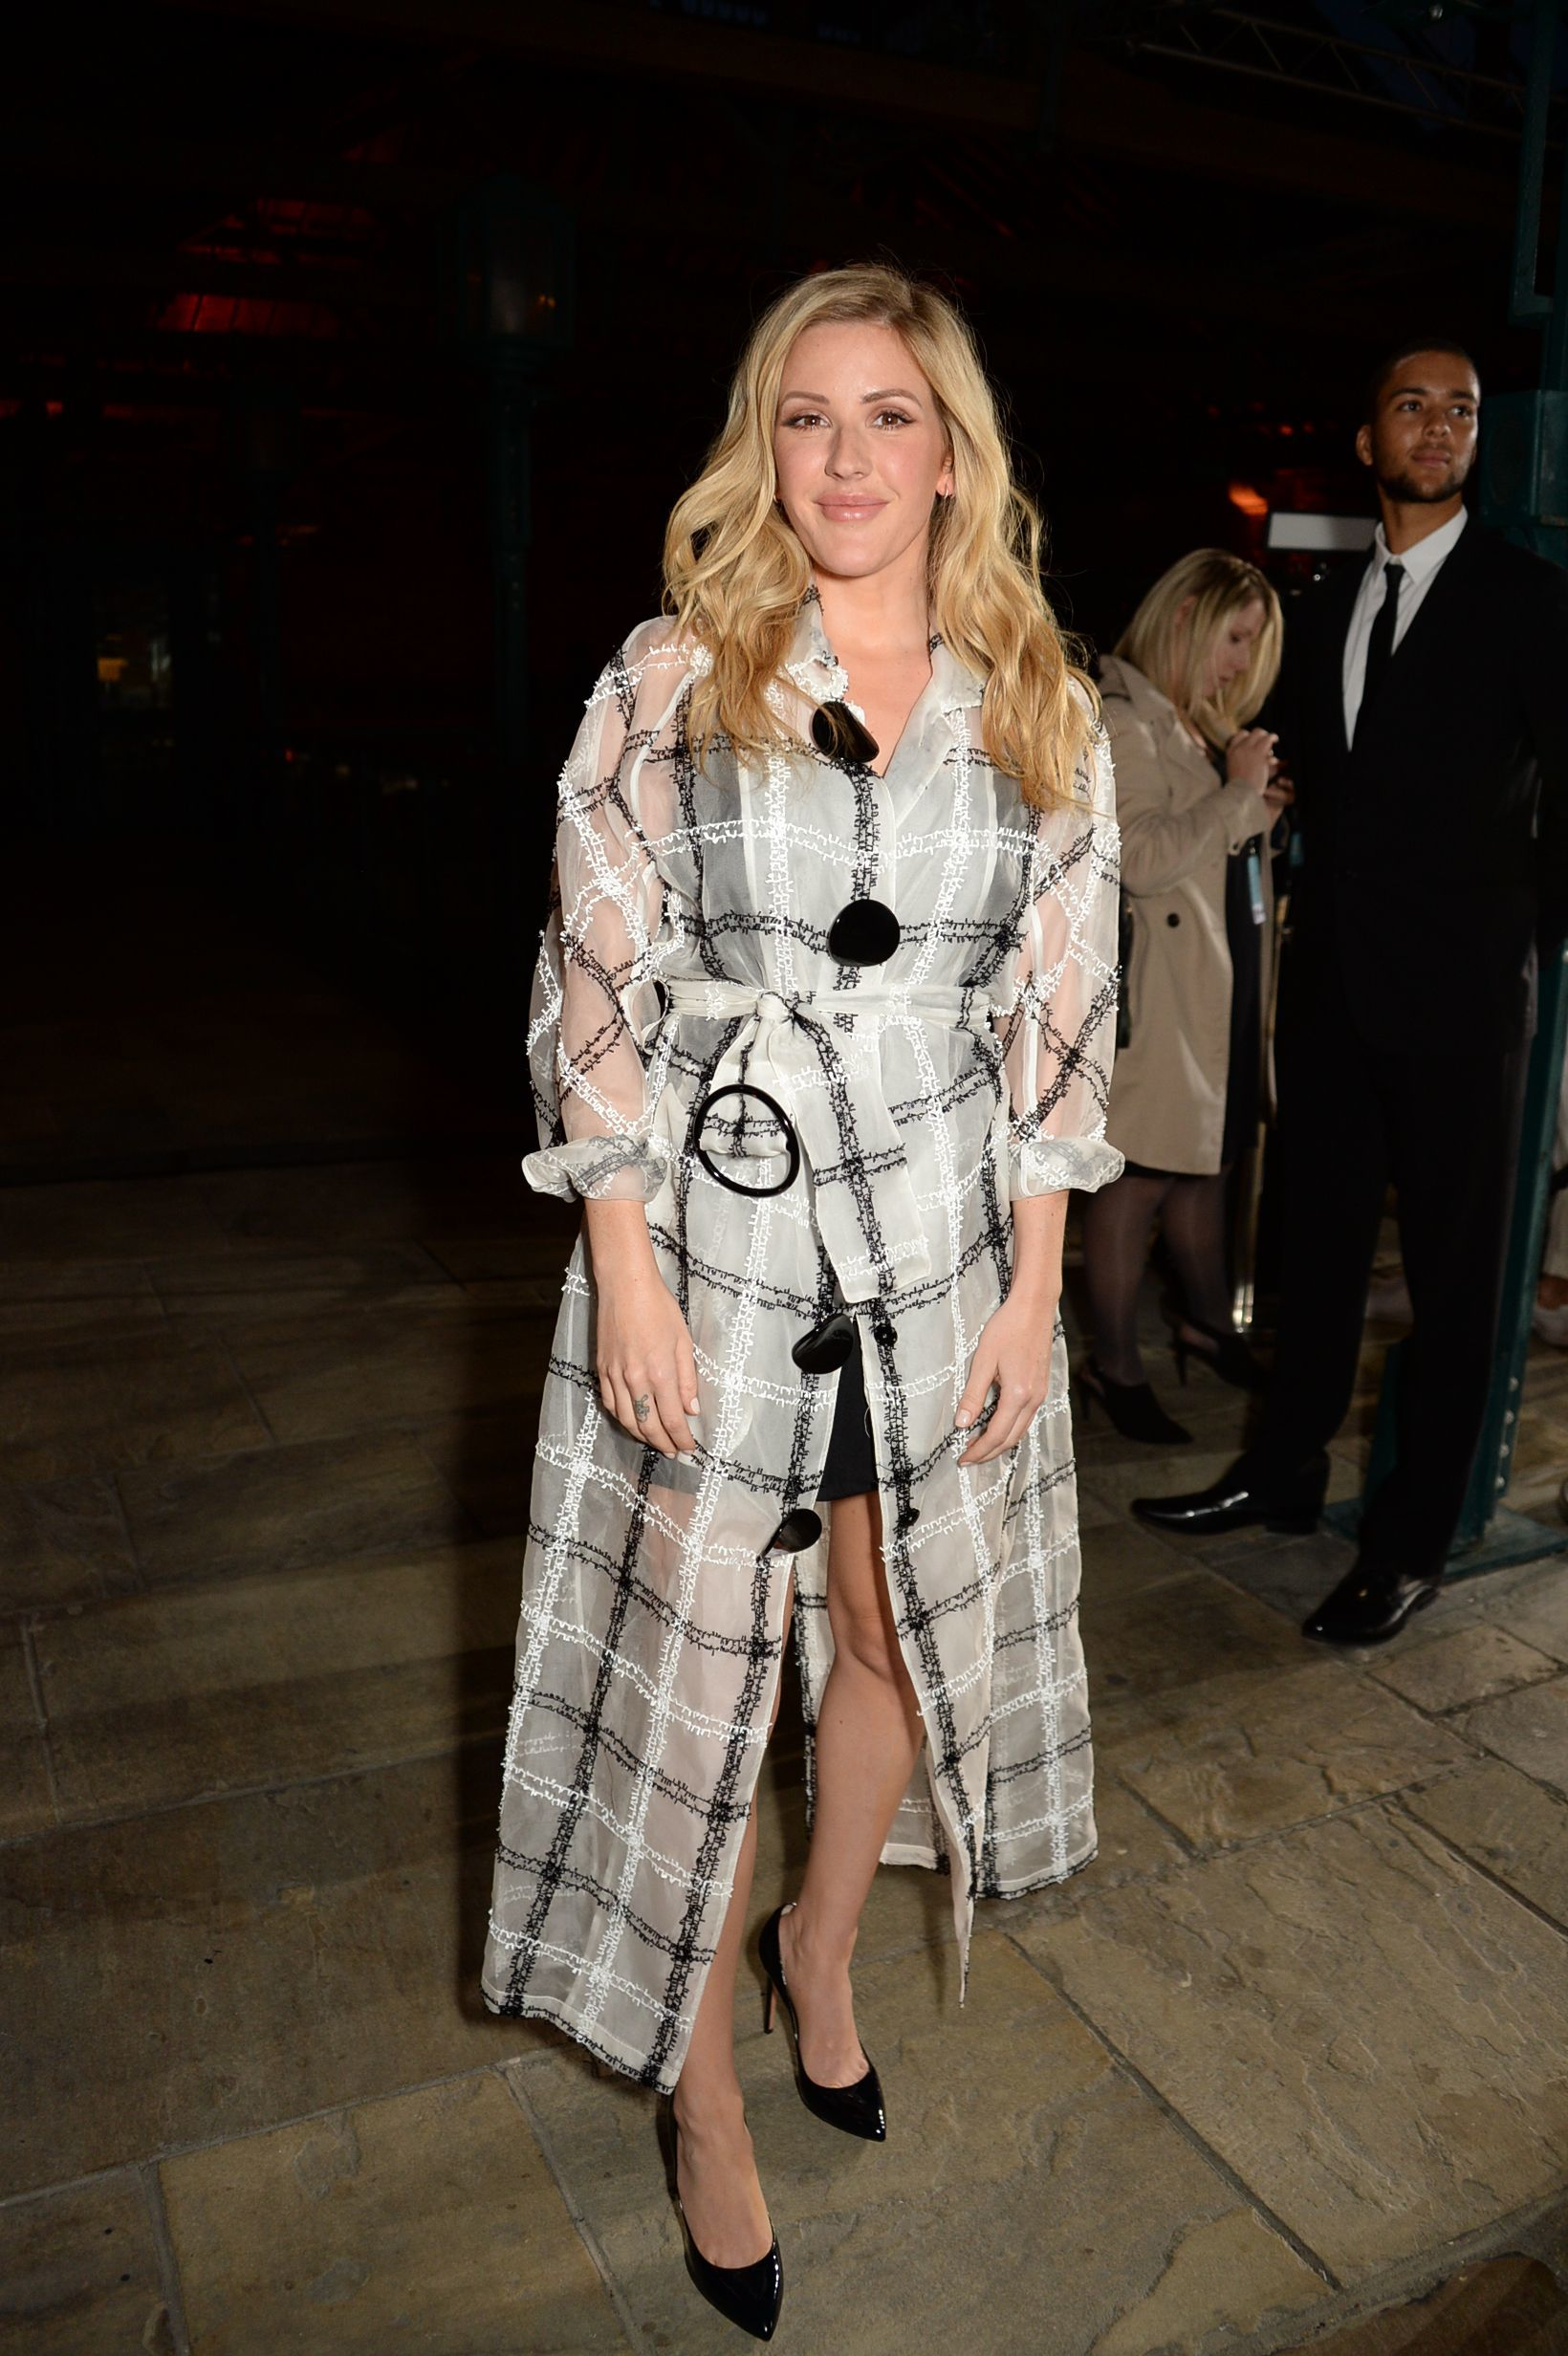 Ellie Goulding attends the Emporio Armani show for Spring/Summer 2018 at London Fashion Week onS ept. 17, 2017.